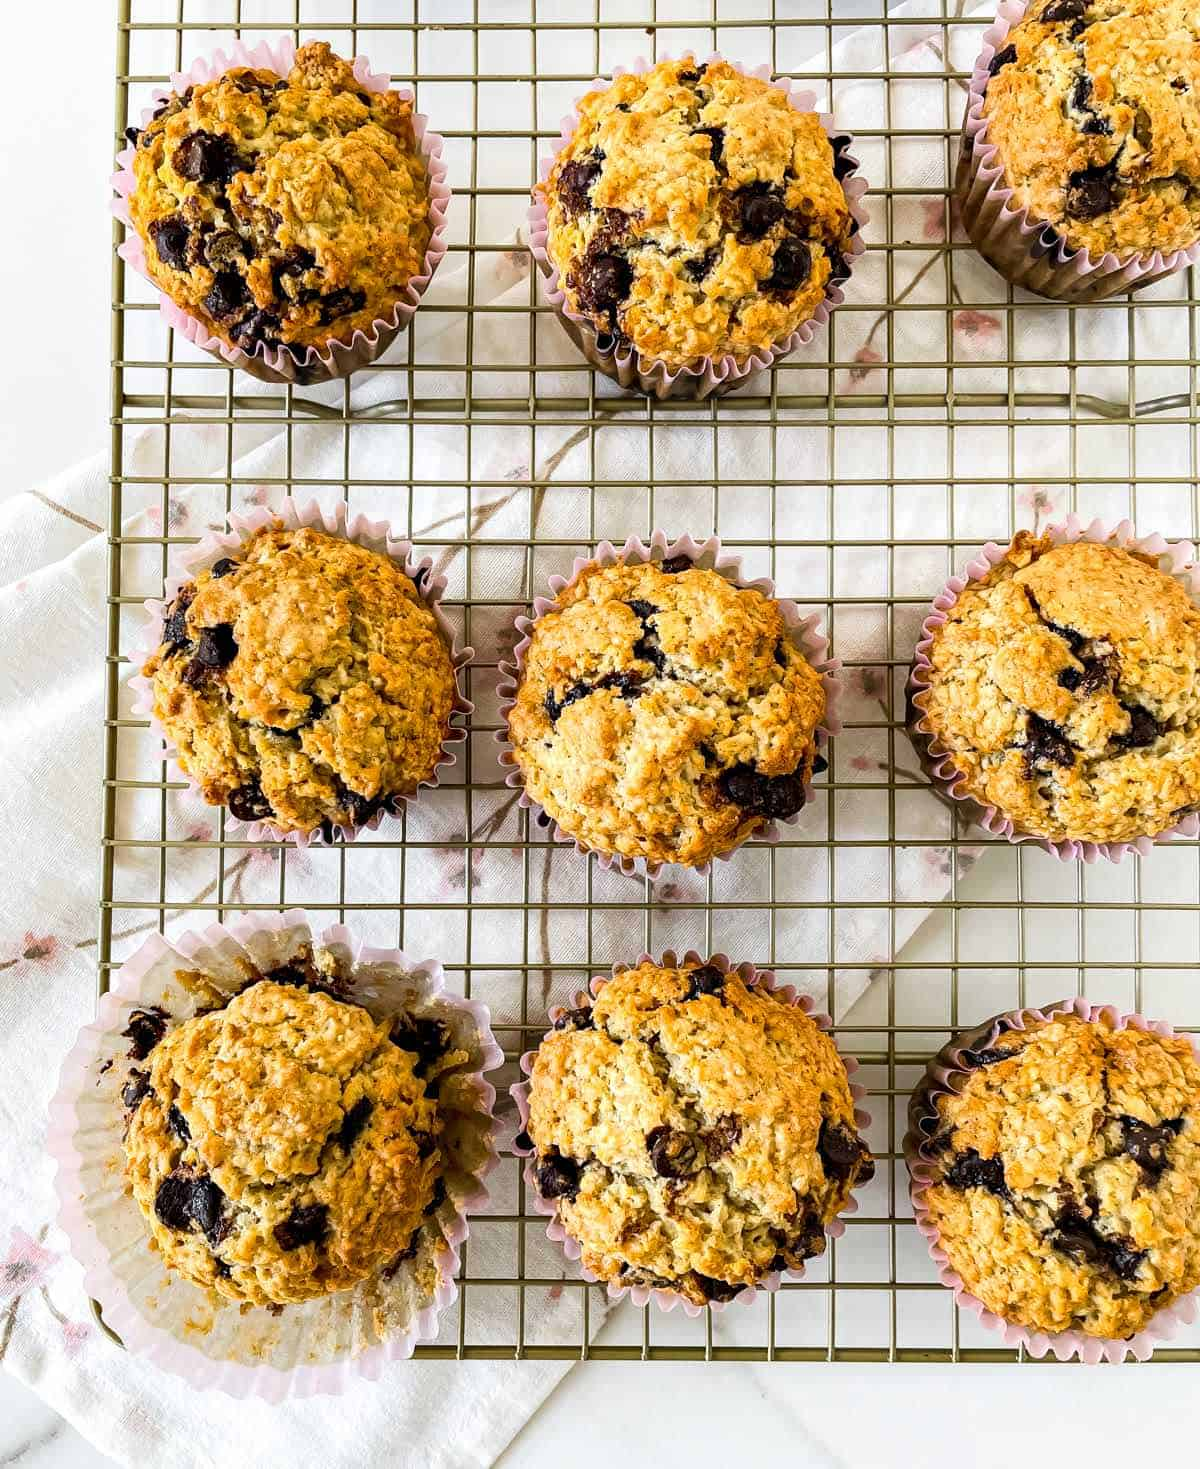 Top view of several oatmeal chocolate chip muffins on a cooling rack over a kitchen towel